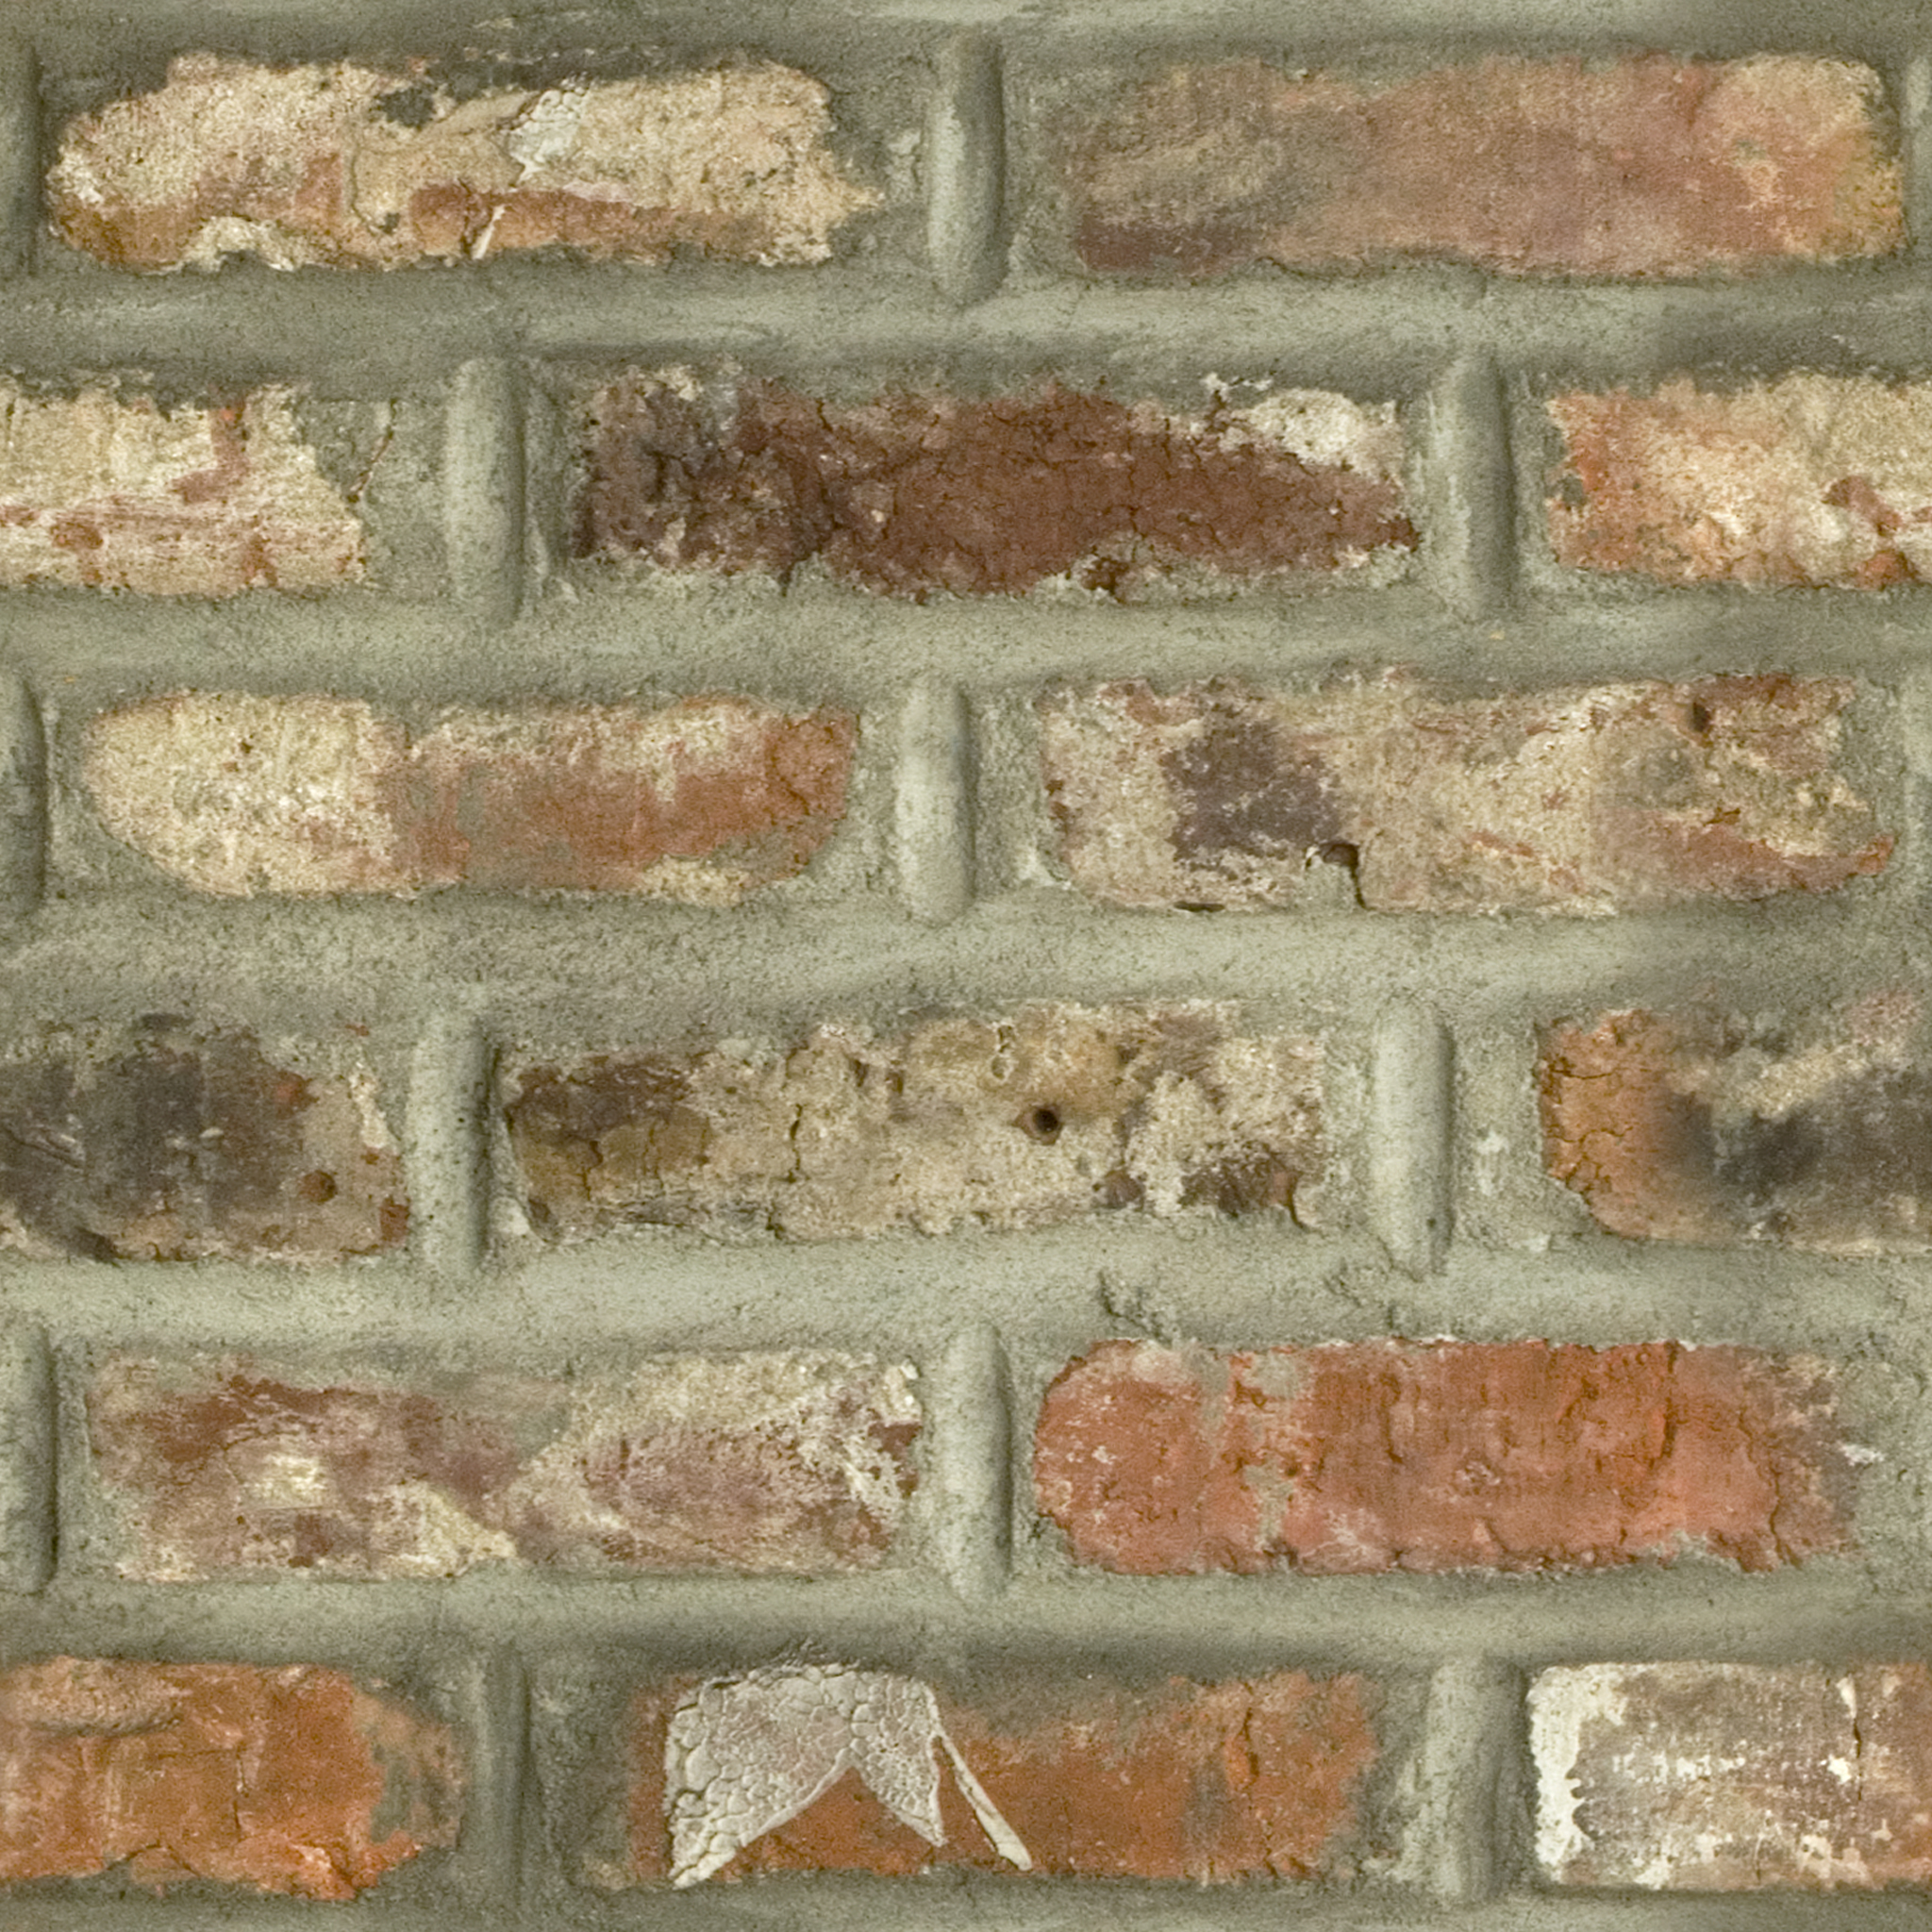 Antiquated Victorious Red Brick.jpg